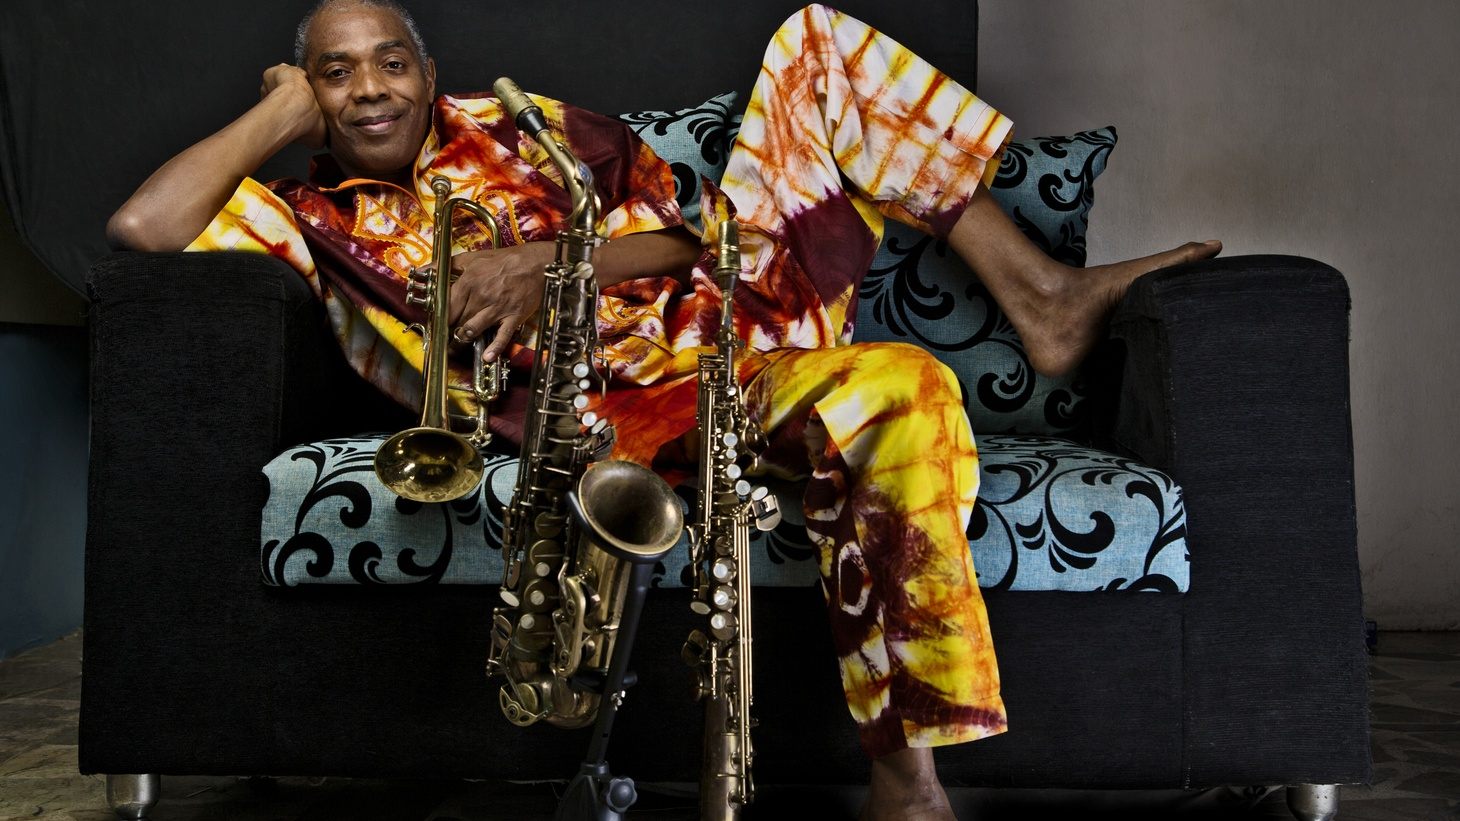 Femi Kuti is the eldest son of Afrobeat pioneer Fela Kuti, and took up the reigns after his death. On his new collection of songs Kuti continues his family's socially conscious message, but incorporates love songs into the mix.